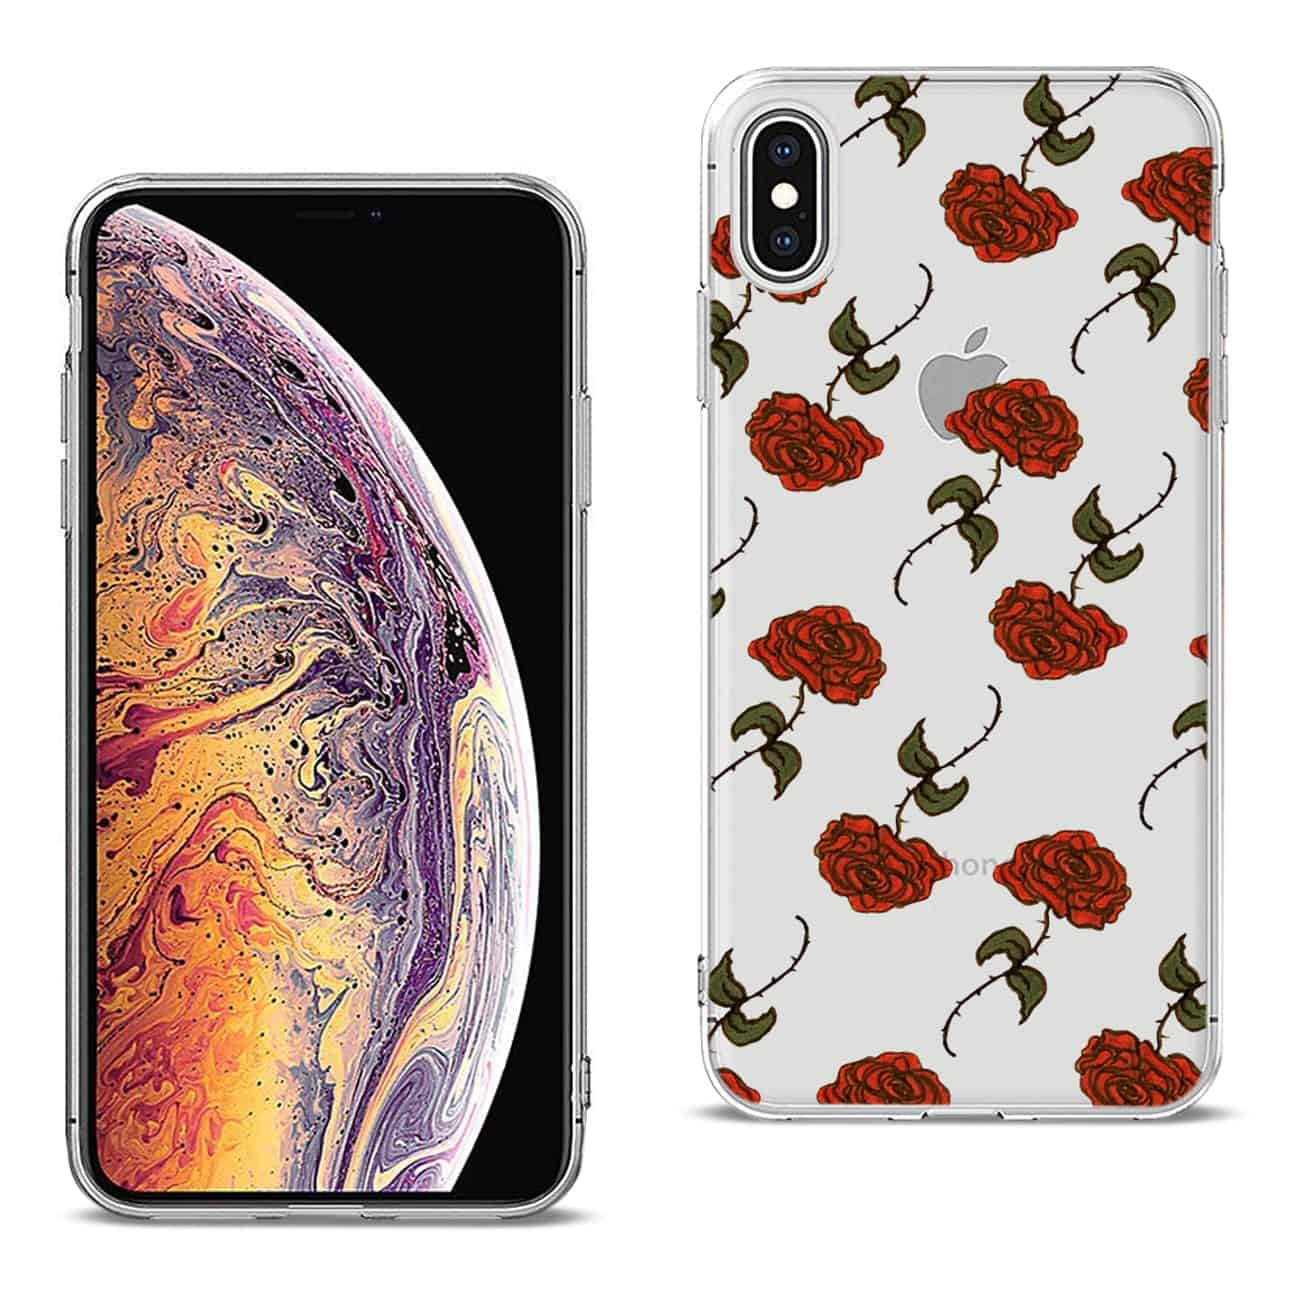 Apple iPhone XS MAX Design Air Cushion Case With Rose In Black